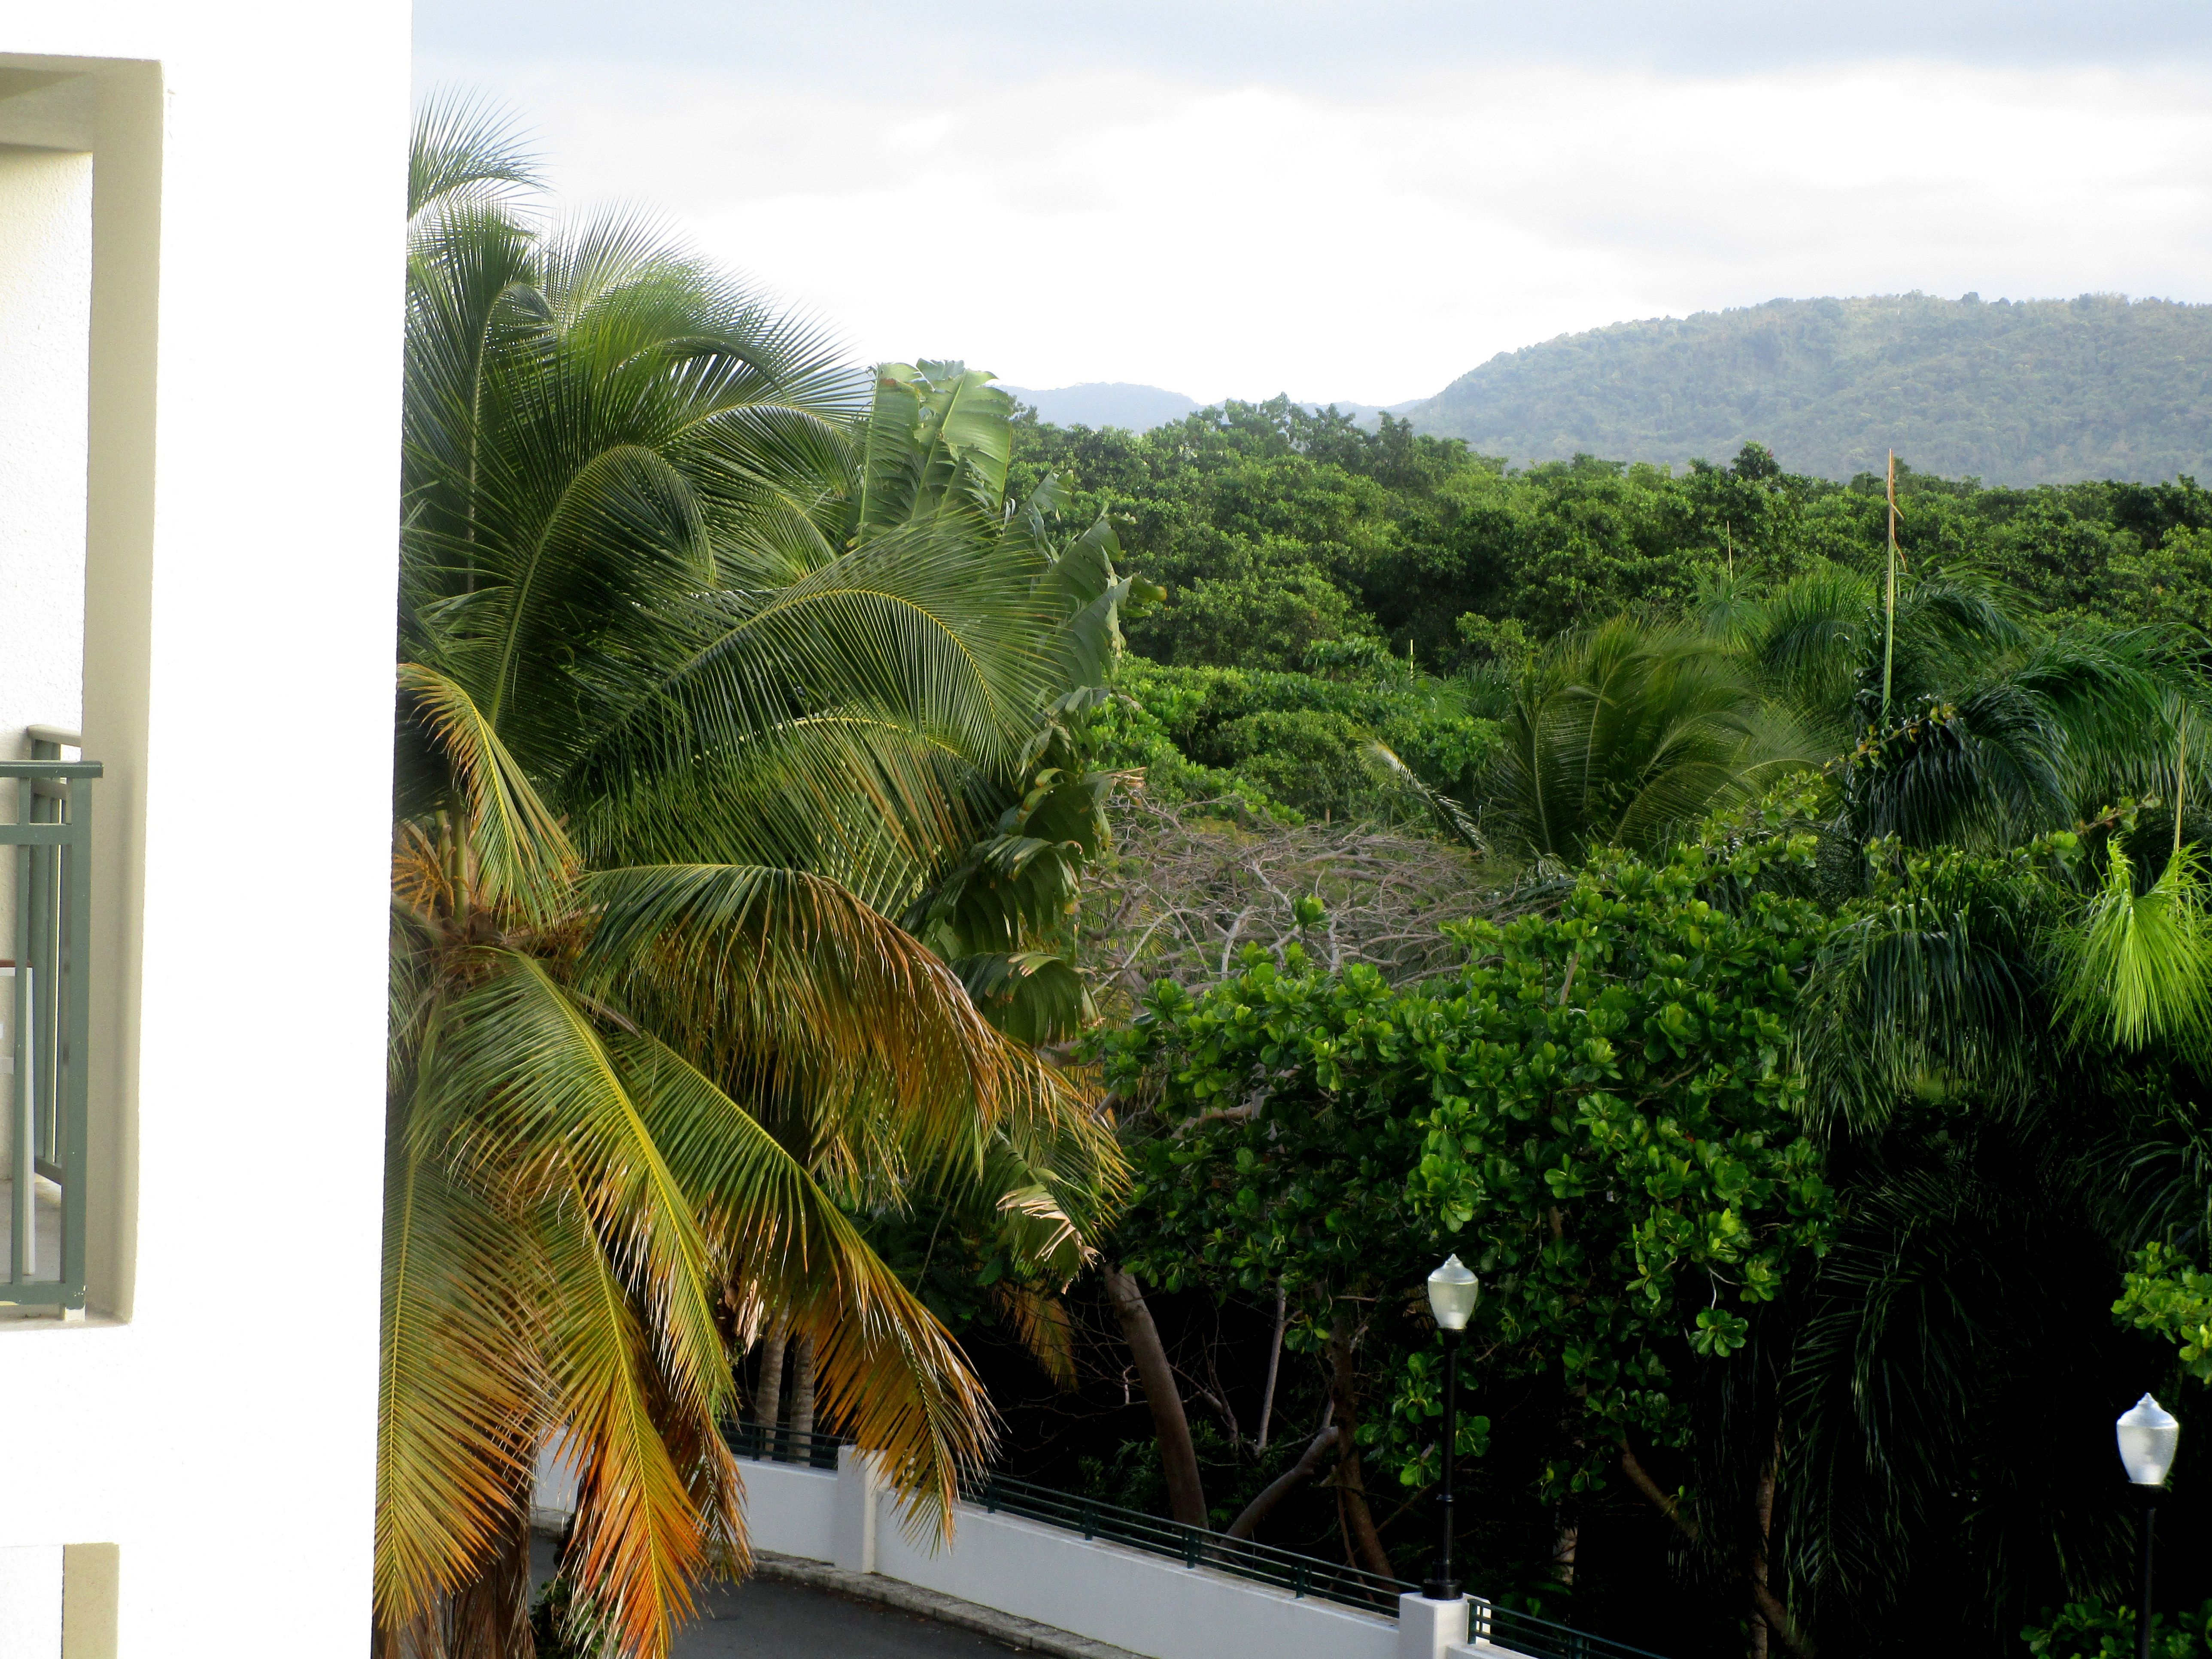 view from our room at Wyndham Hotel - Puerto Rico